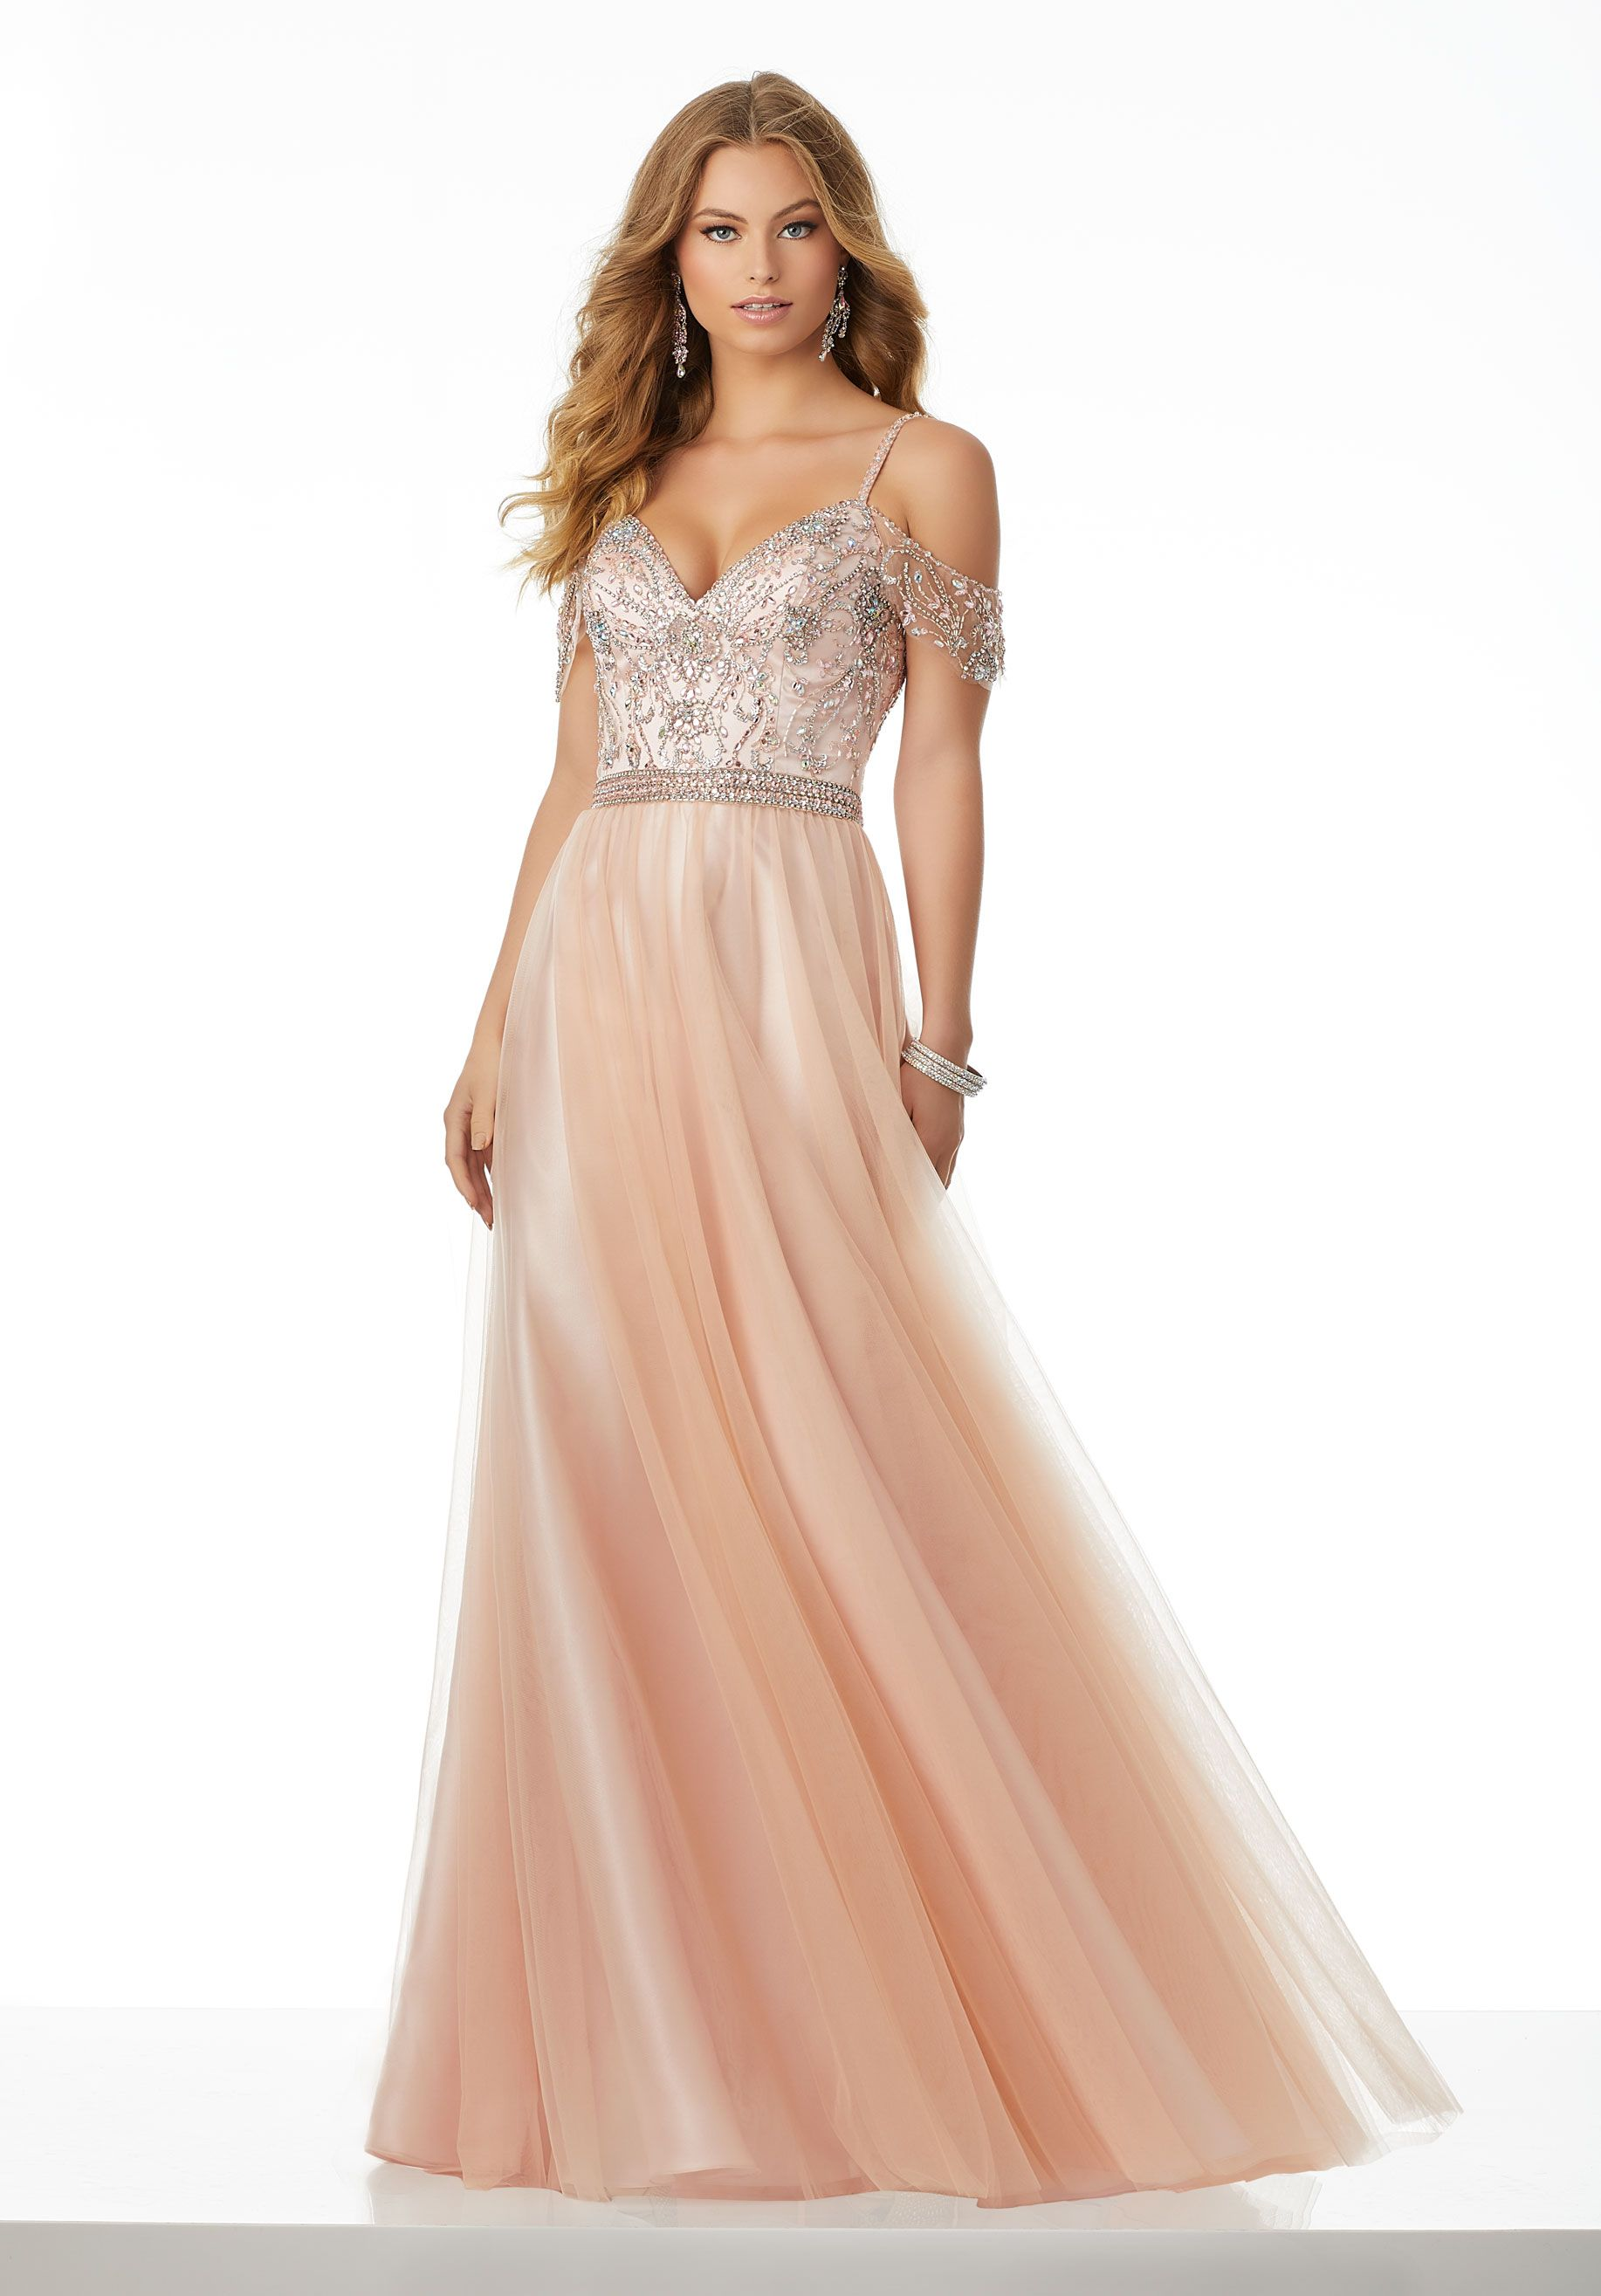 21ab1267c71 Beautifully Beaded Soft Net Prom Gown Featuring a Cold Shoulder Neckline  for a Boho Chic Look.